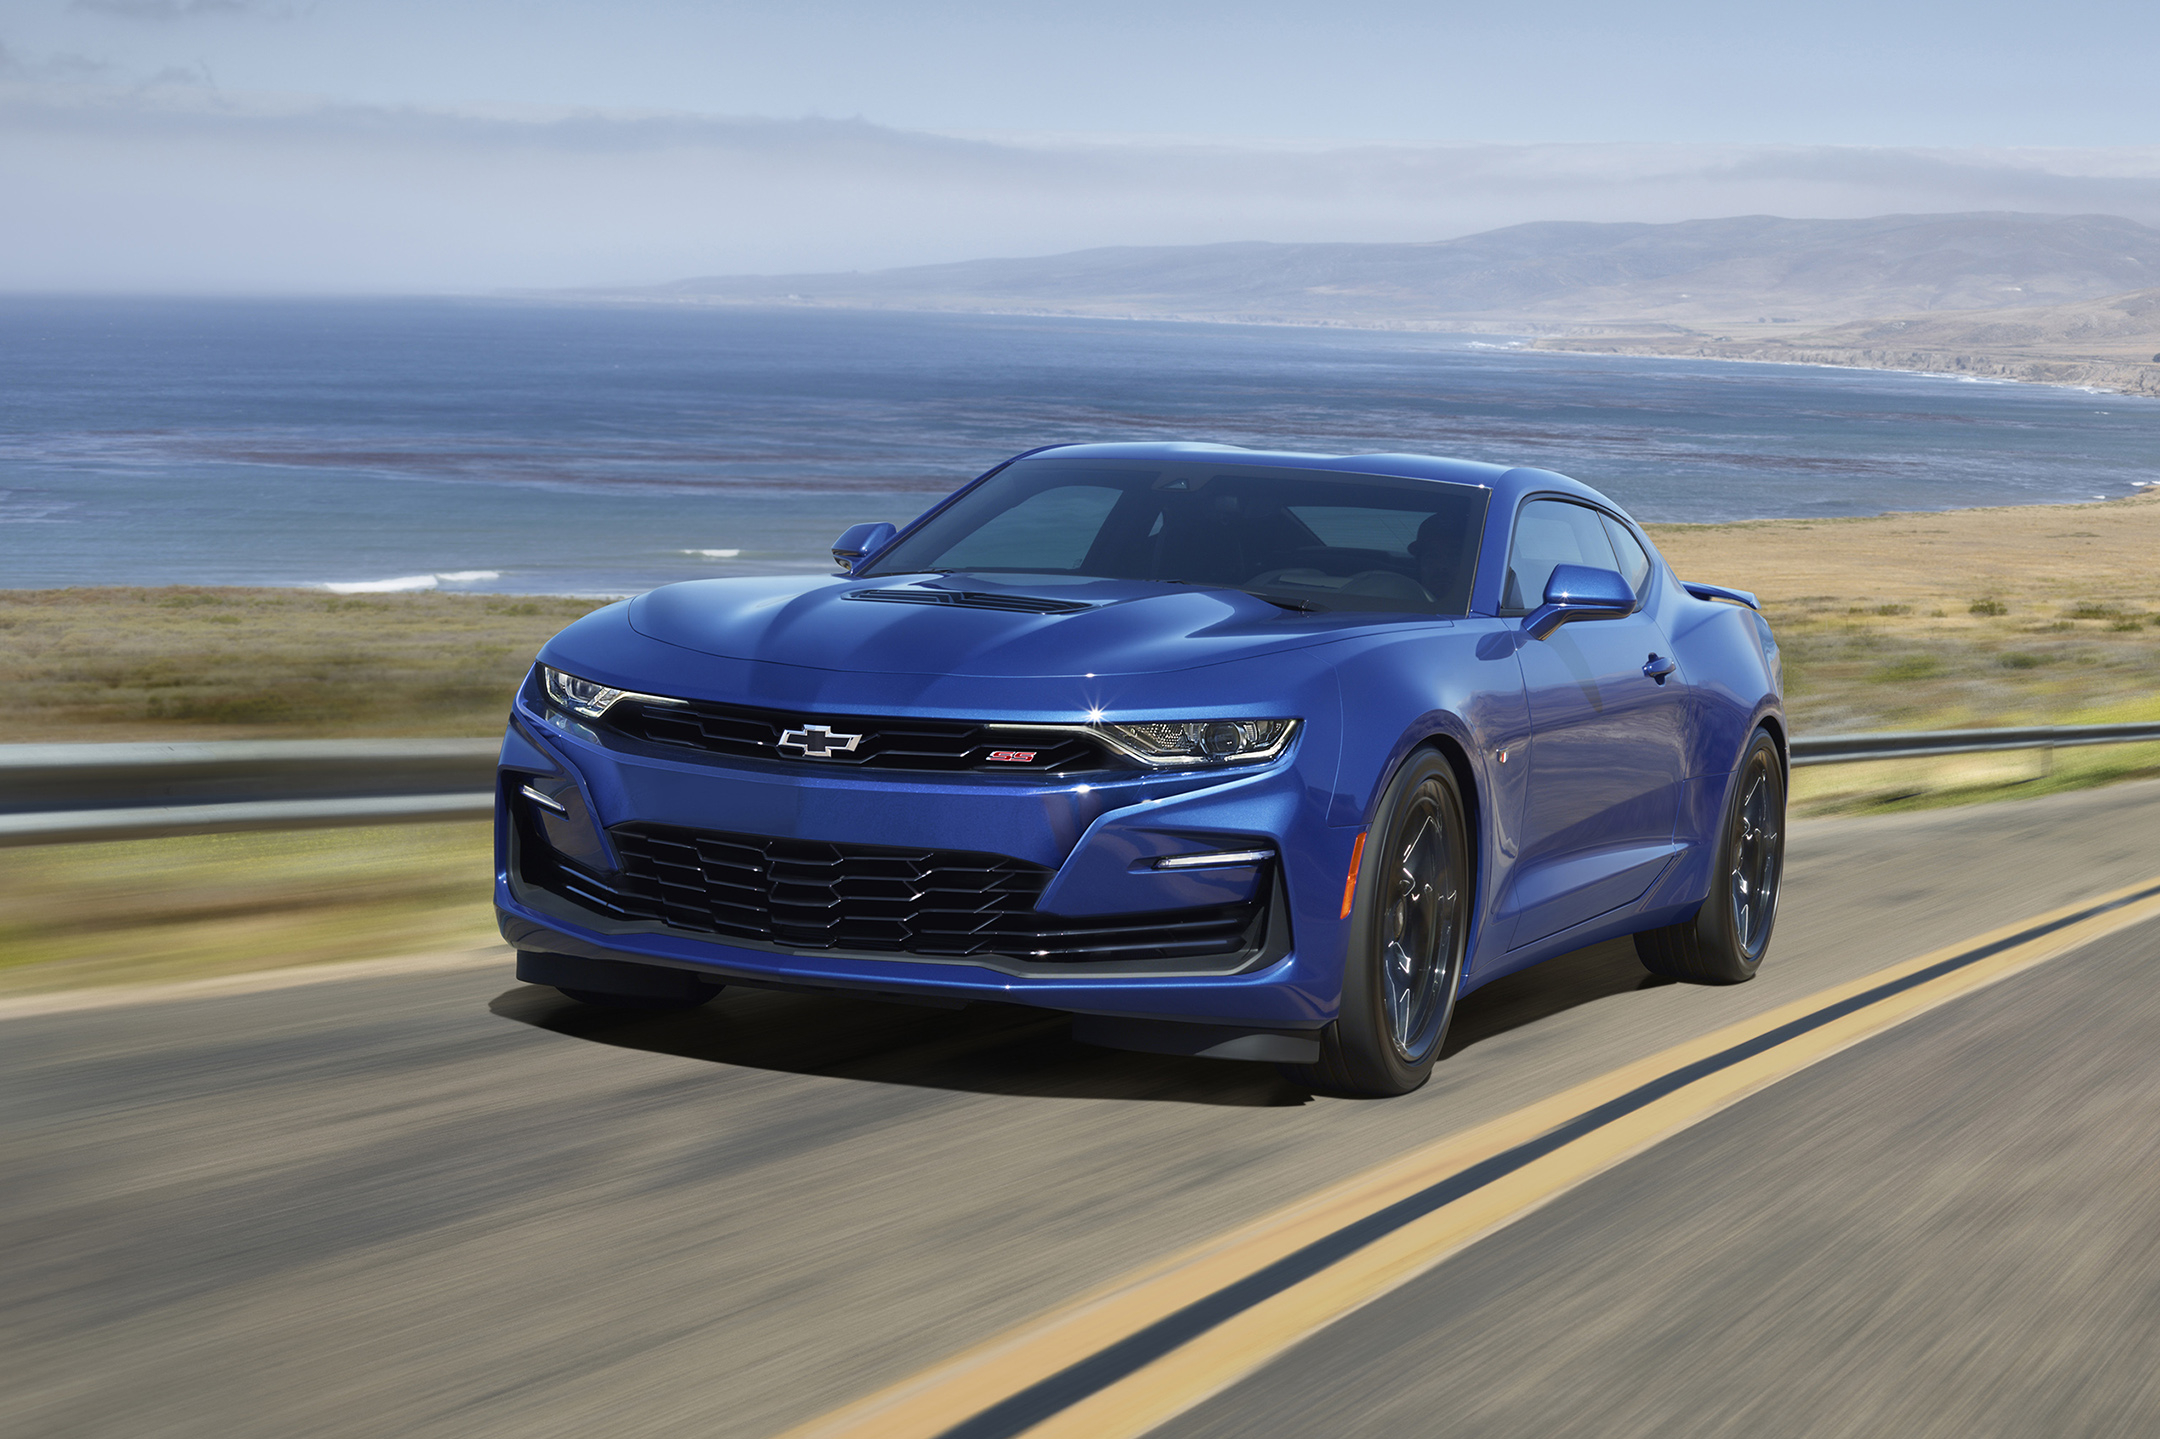 2020 Chevrolet Camaro Gets Ss Nose Job, Cheaper V-8 Model 2021 Chevy Camaro Ss Owners Manual, Pictures, Price